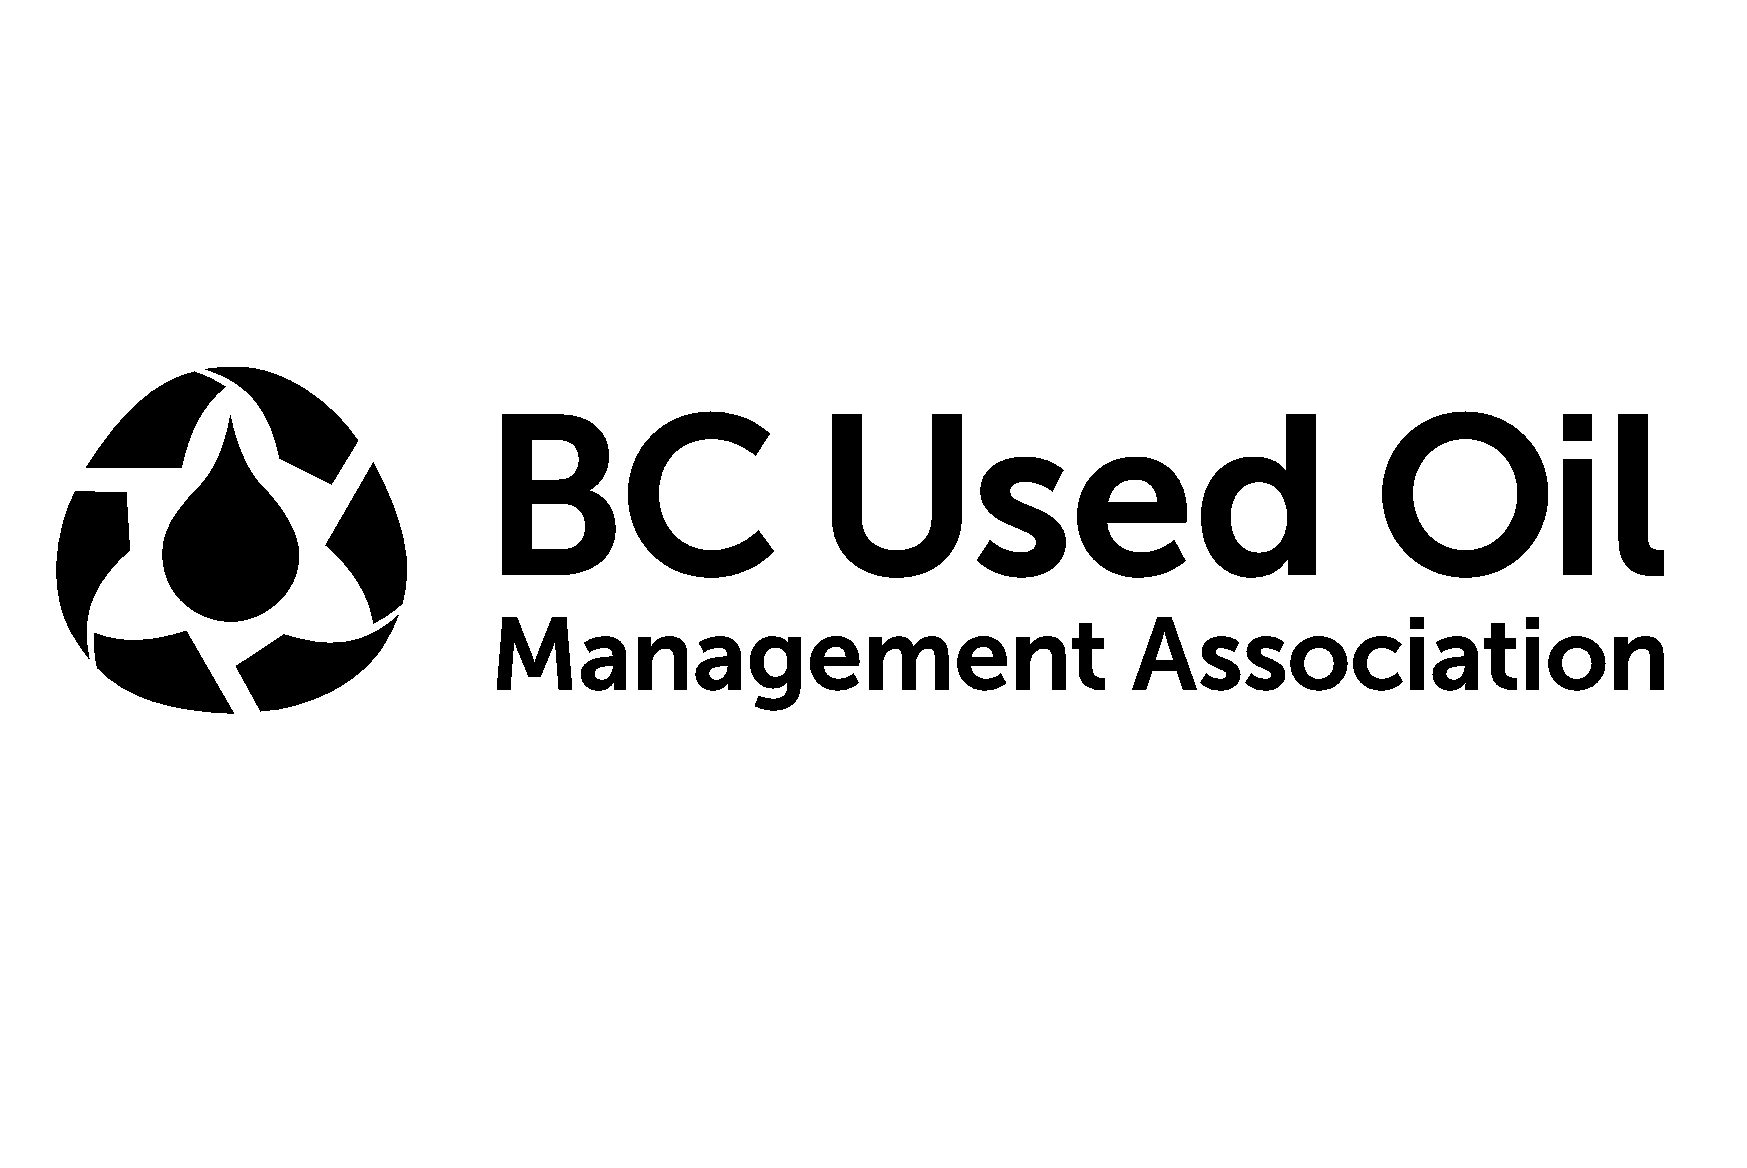 BC Used Oil Management Association